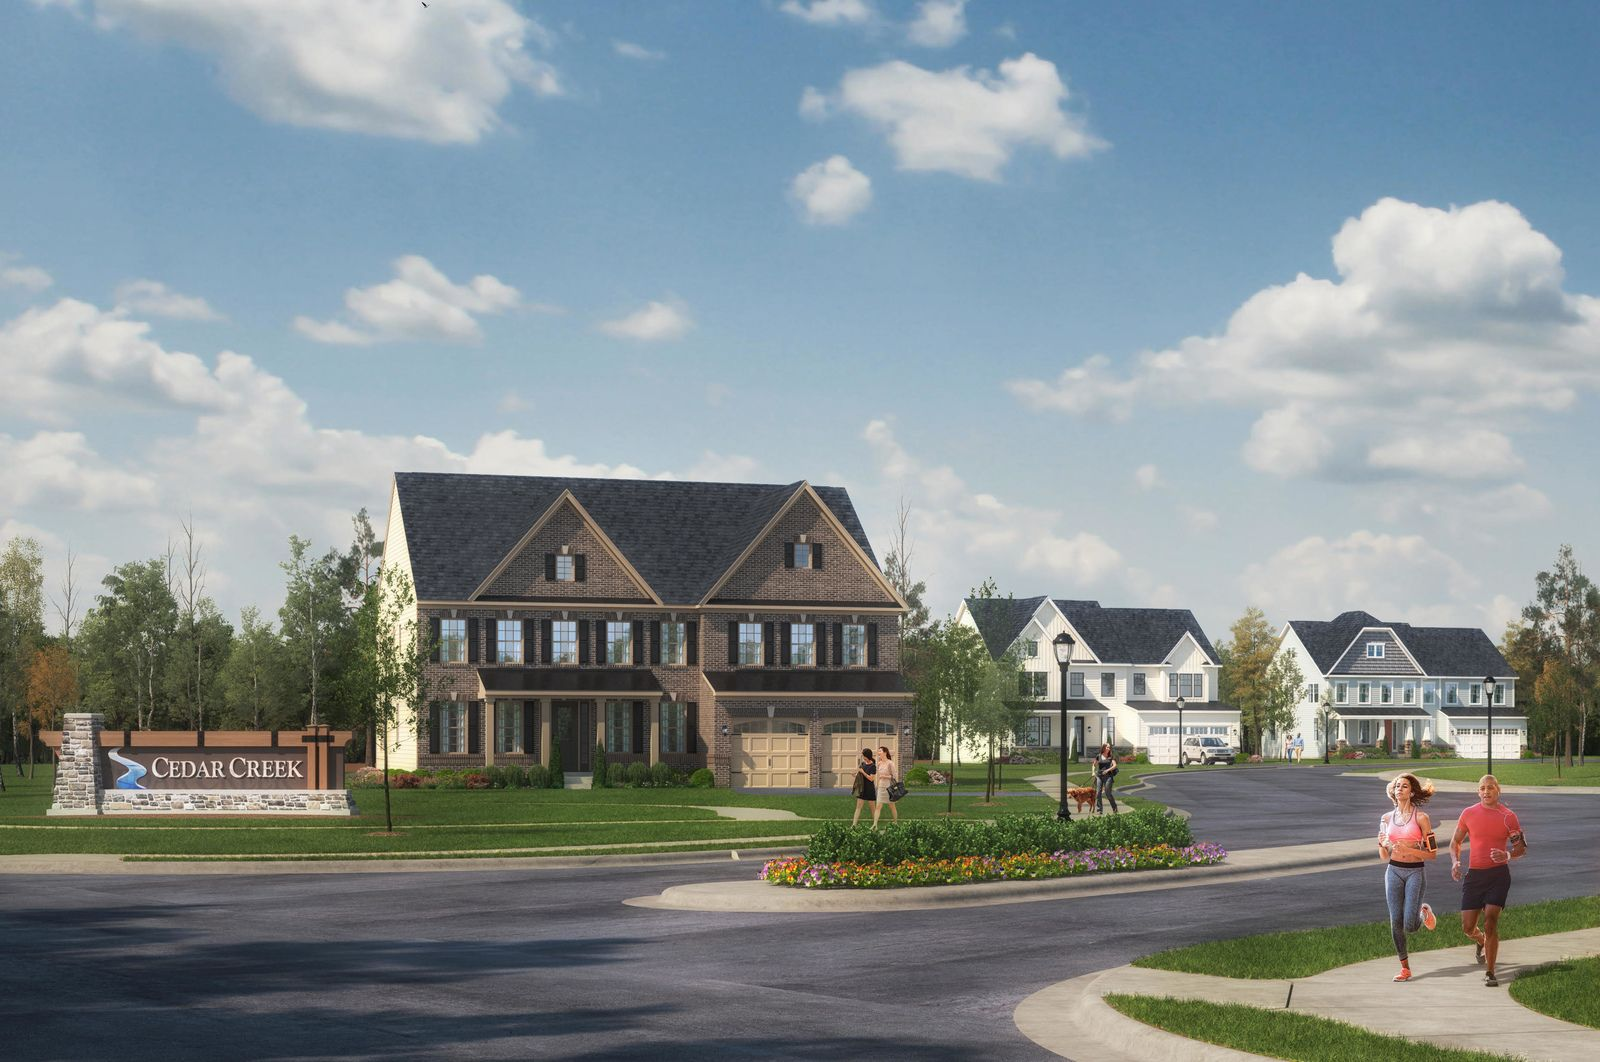 SURROUNDED BY NATURE, YET CLOSE TO EVERYTHING:Welcome to Cedar Creek, NVHomes premier neighborhood coming this February to Columbia, Maryland.Join our VIP list to learn more about our luxury single-family homes from the upper $800s.